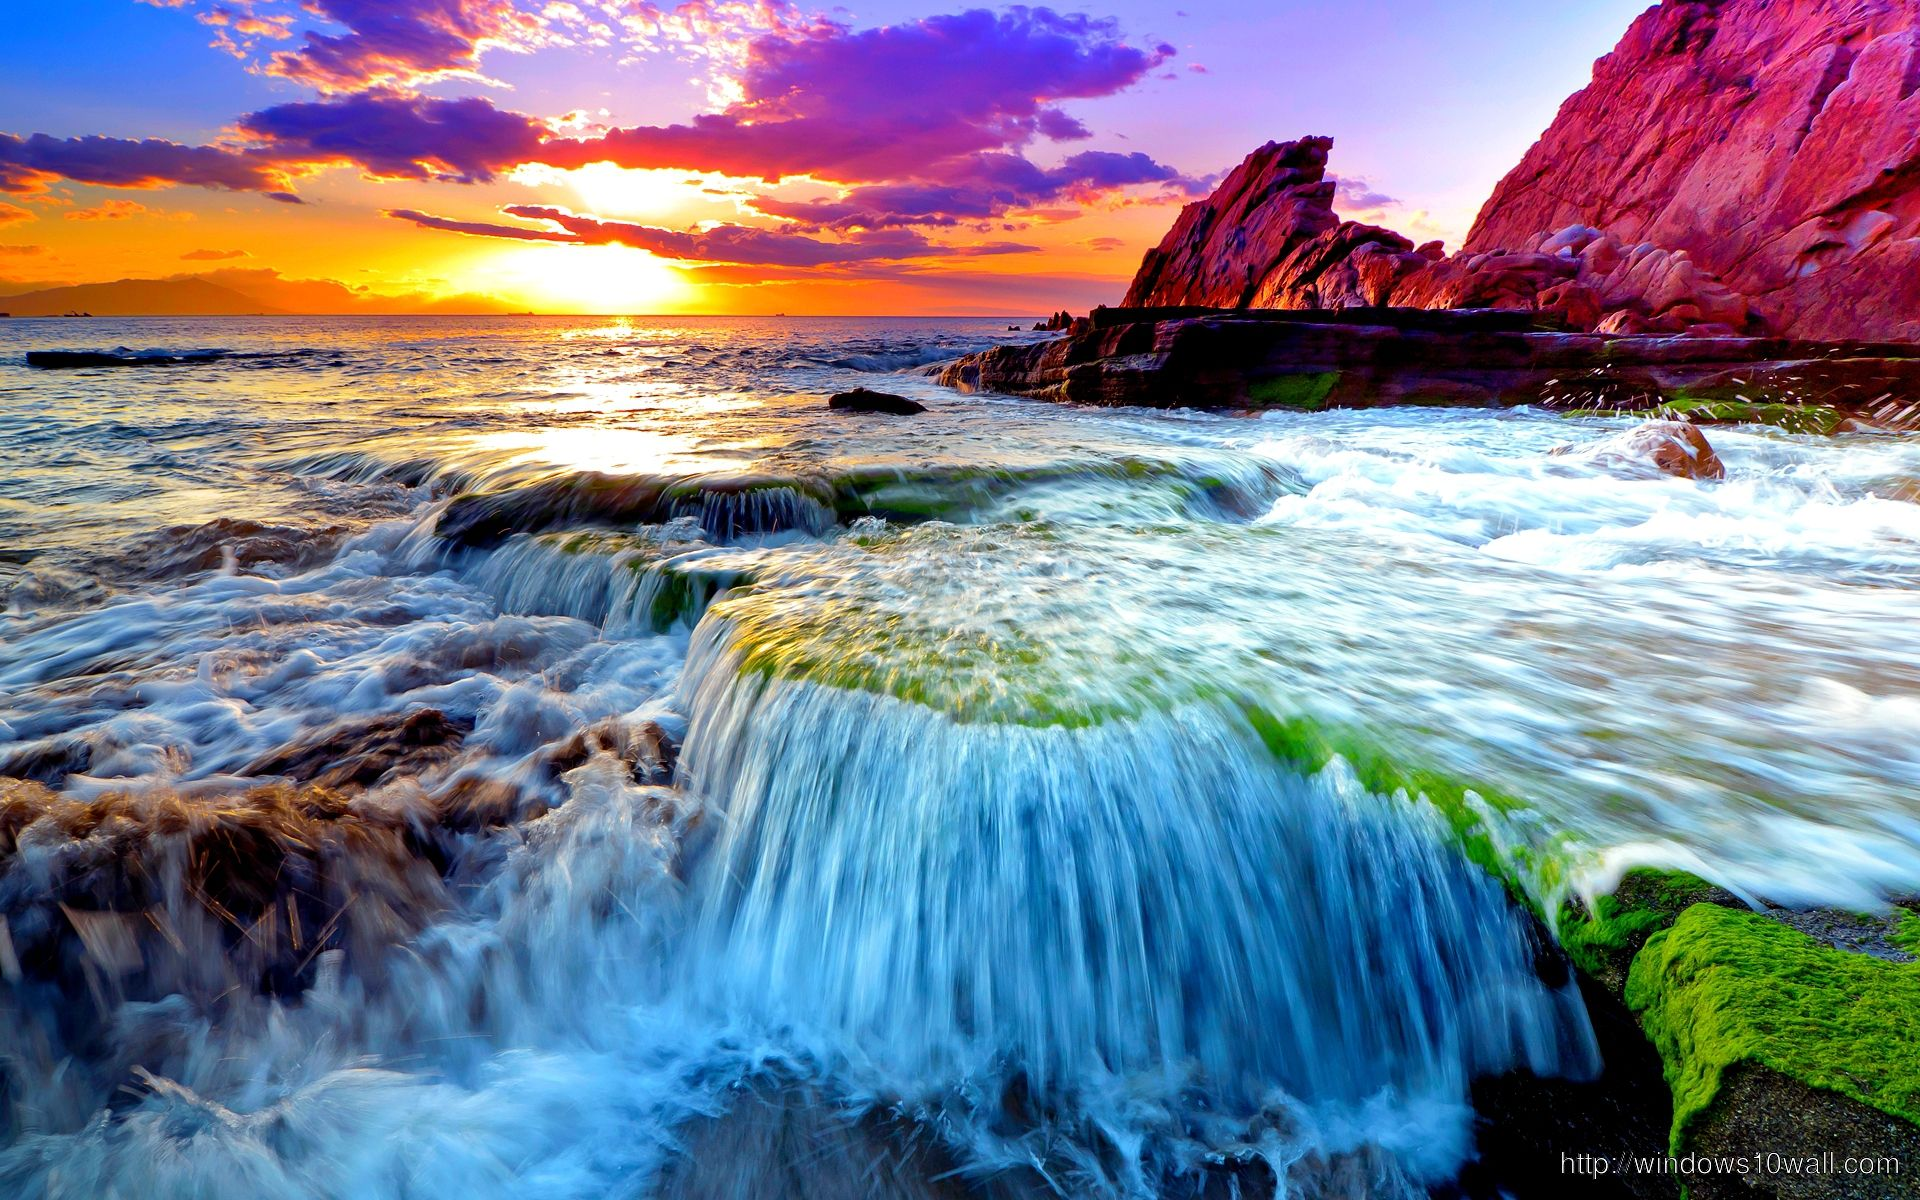 Beautiful Scene Of Earth Ocean Wallpaper Windows 10 Wallpapers Ocean Wallpaper Waterfall Wallpaper Nature Wallpaper